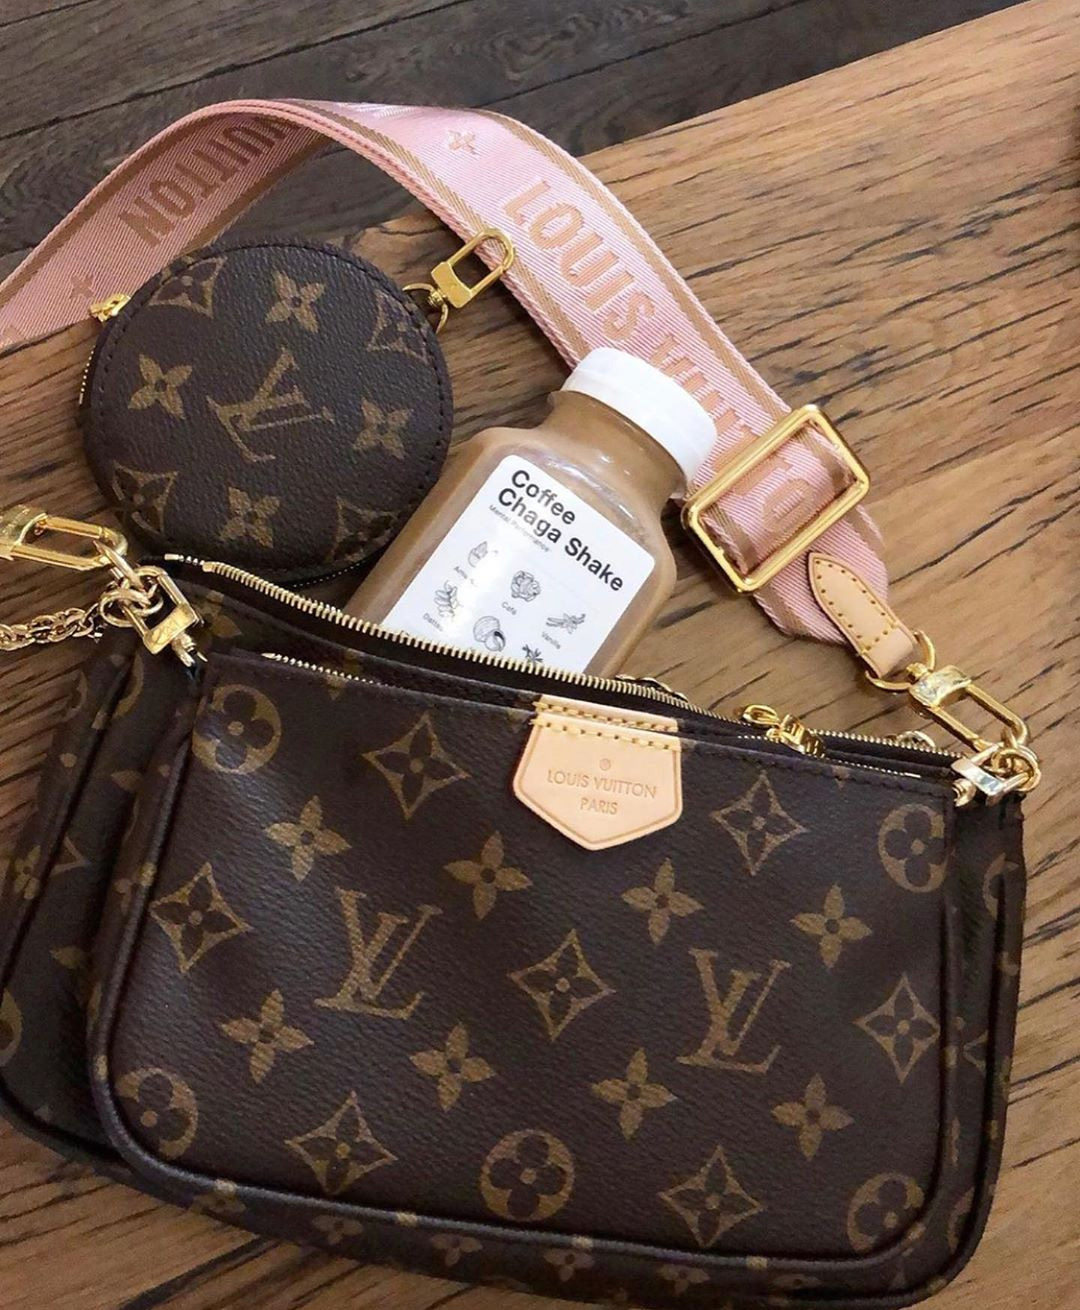 Louis Vuitton Mult Pochette Accessories Is The New Eva Bag